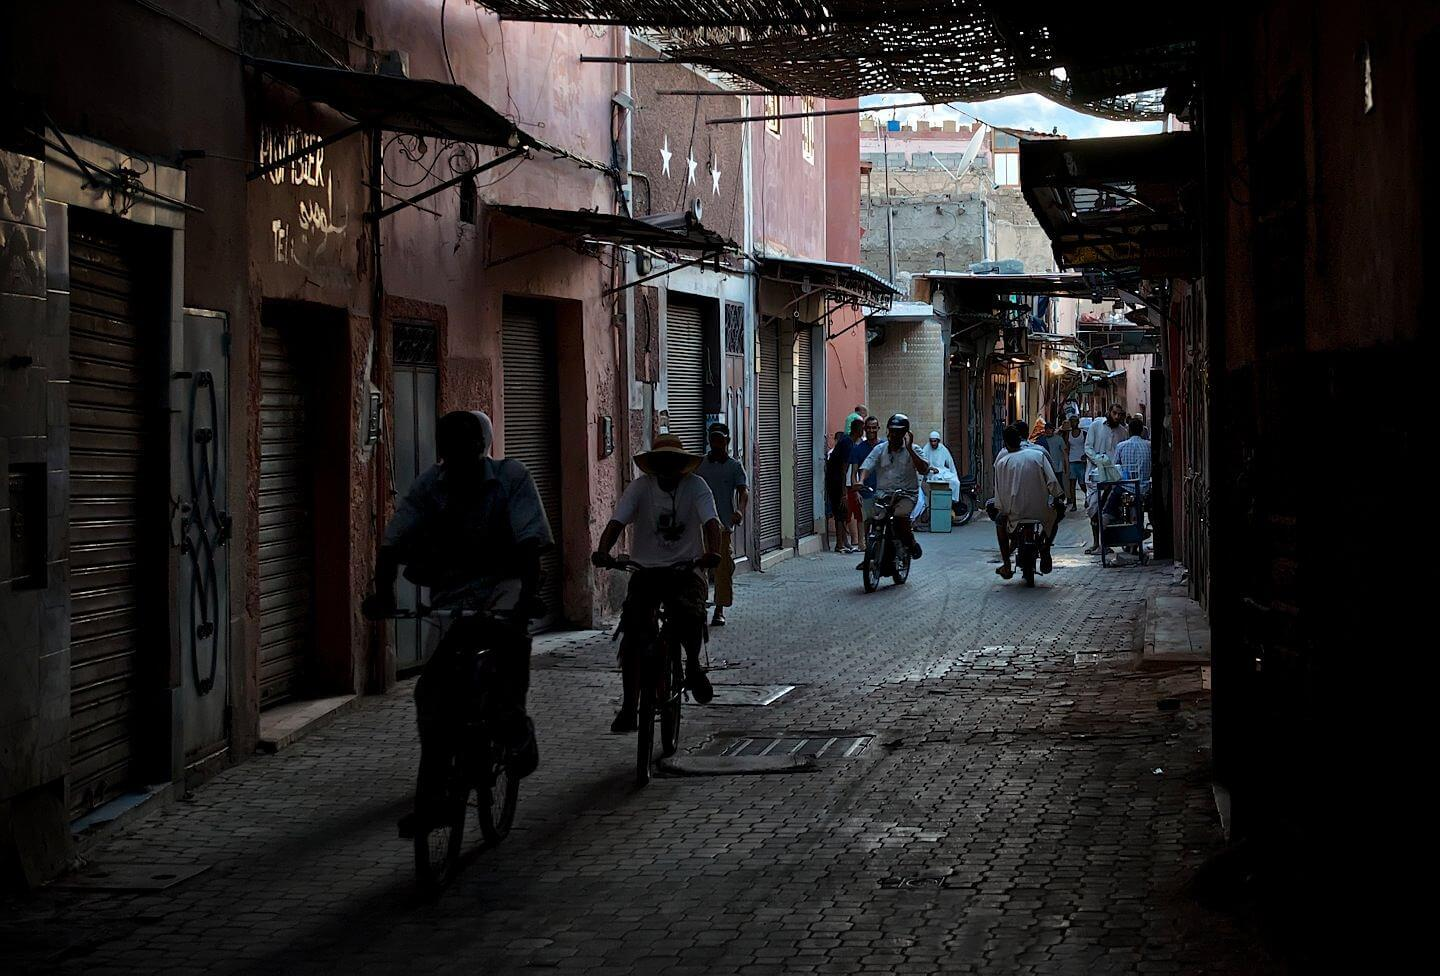 Street of Marrakech filled with mopeds